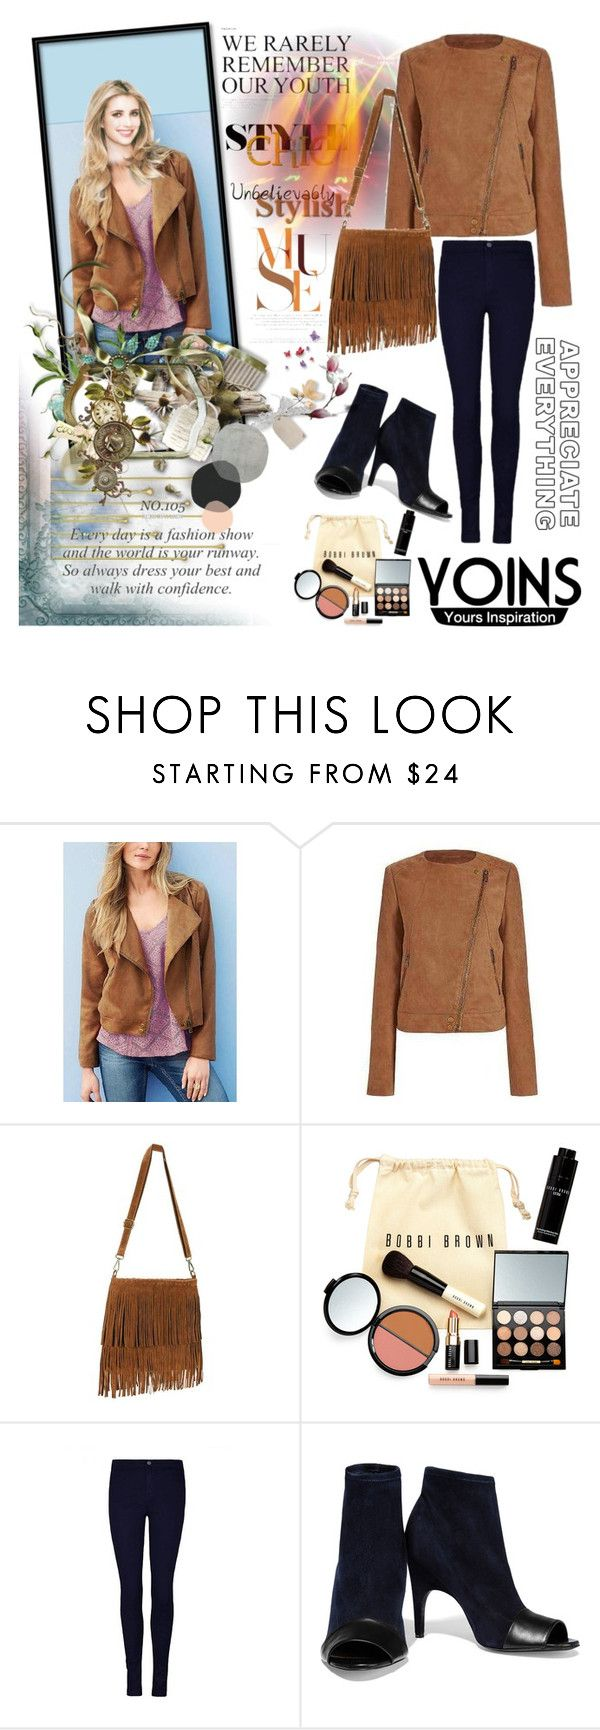 """""""Yoins jacket"""" by irinavsl ❤ liked on Polyvore featuring Bobbi Brown Cosmetics, Acne Studios and yoins"""